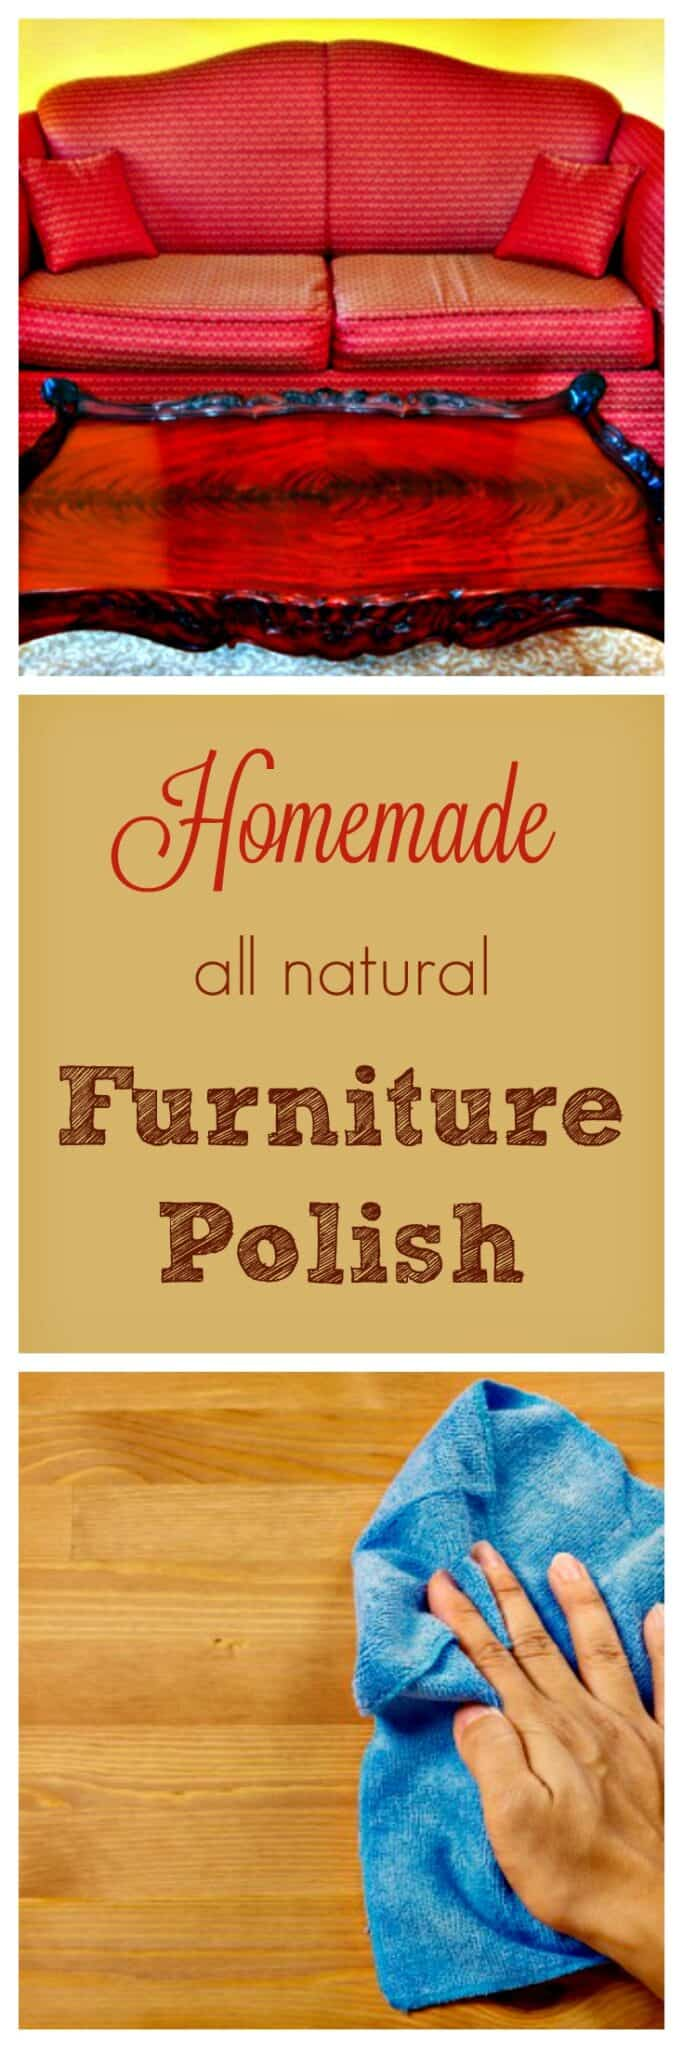 Homemade furniture polish via HousewifeHowTos